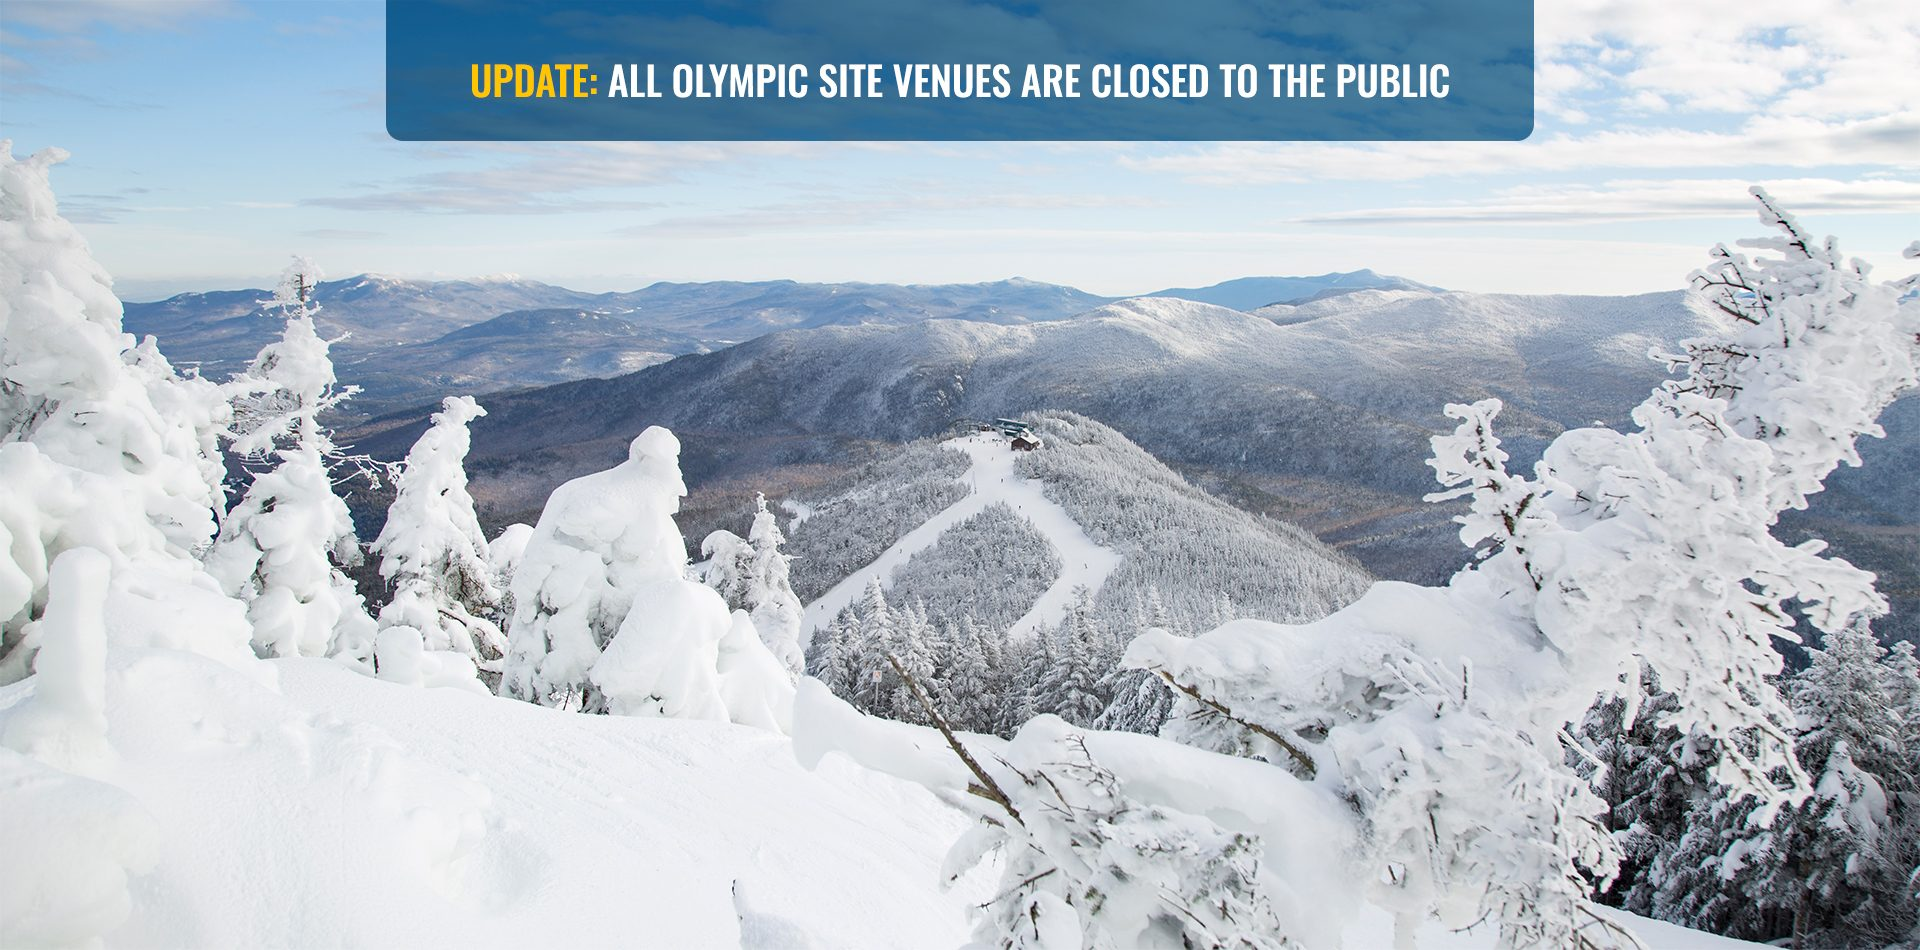 Update: All Olympic Site Venues Are Closed To The Public